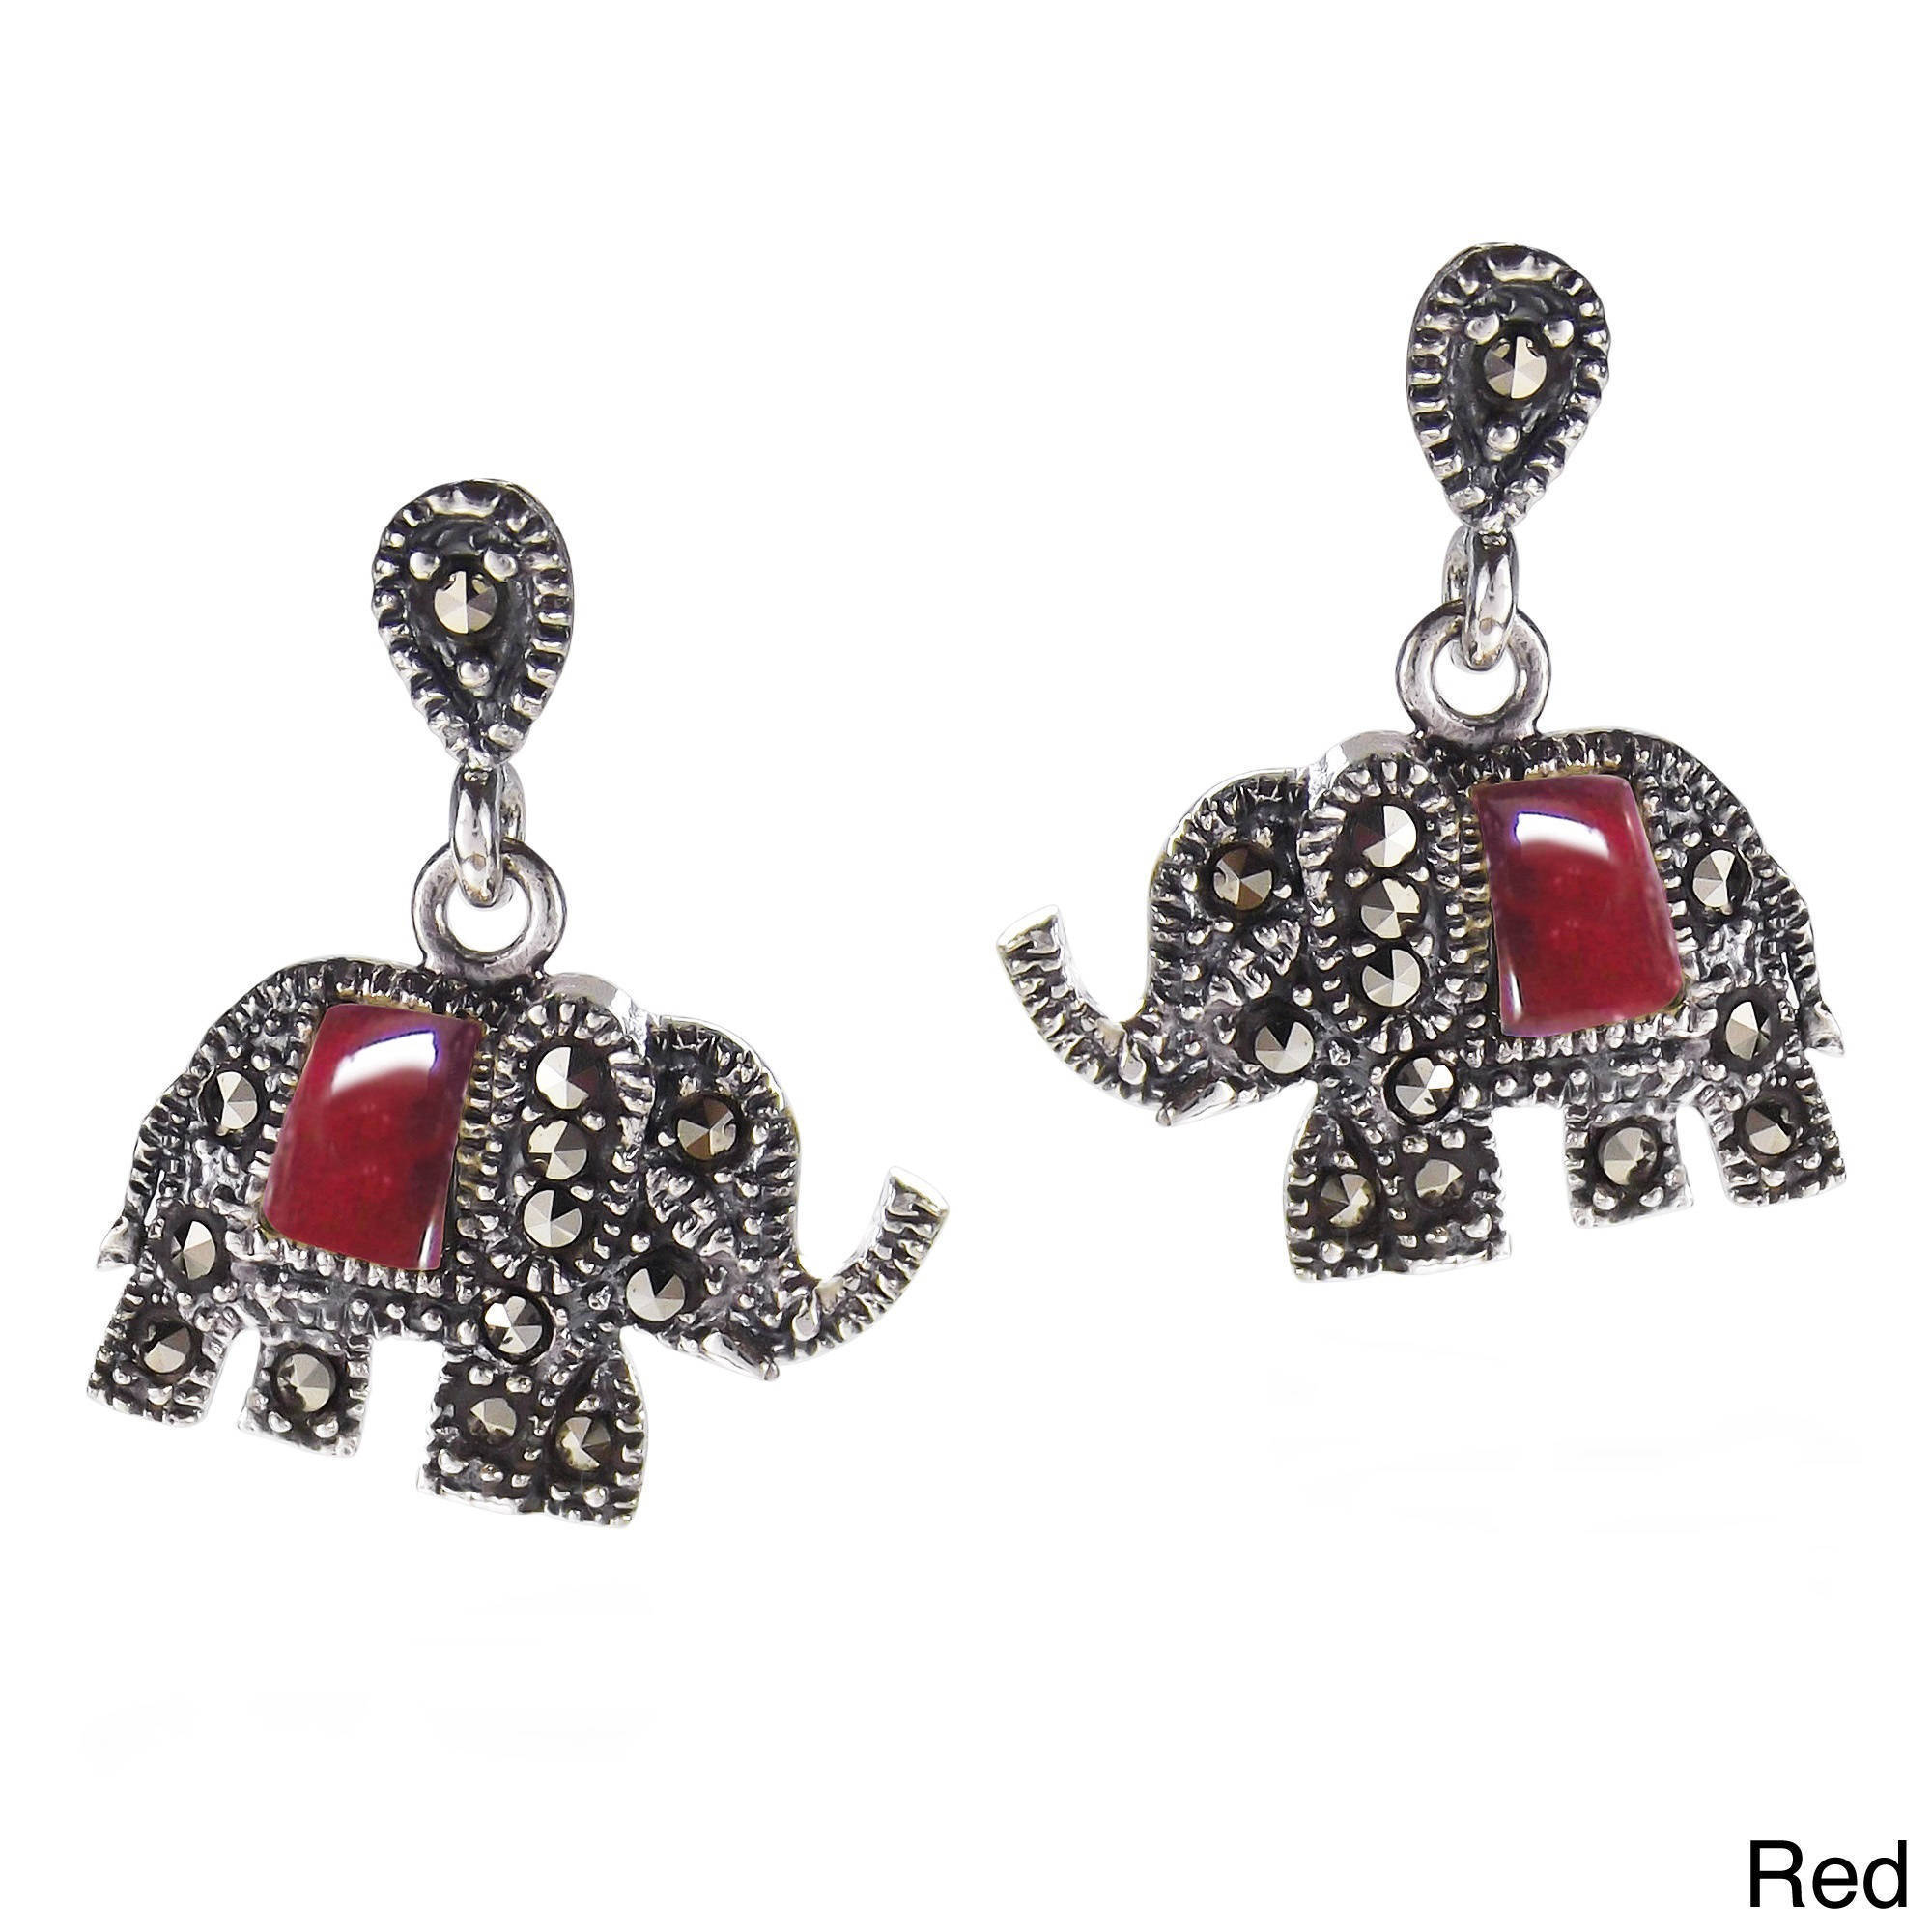 Shop Handmade Royal Elephant Stone and Marcasite 925 Silver